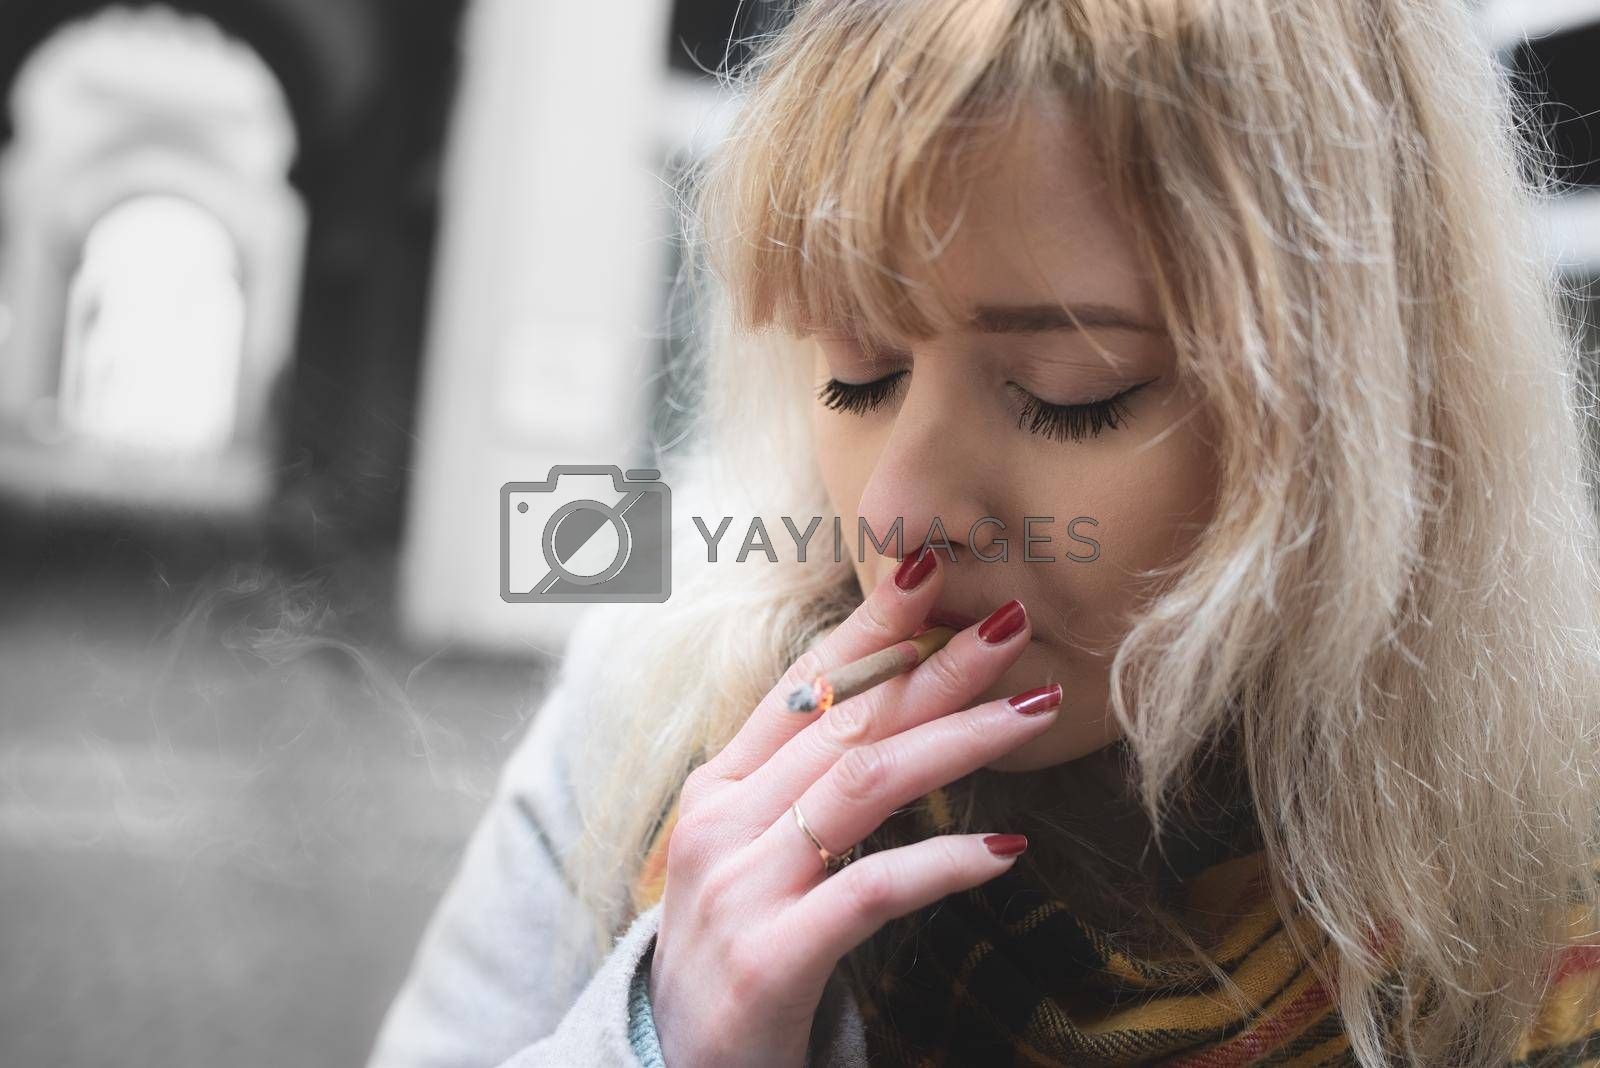 Royalty free image of serious young blond woman on gray background smoking with closed eyes by Nickstock